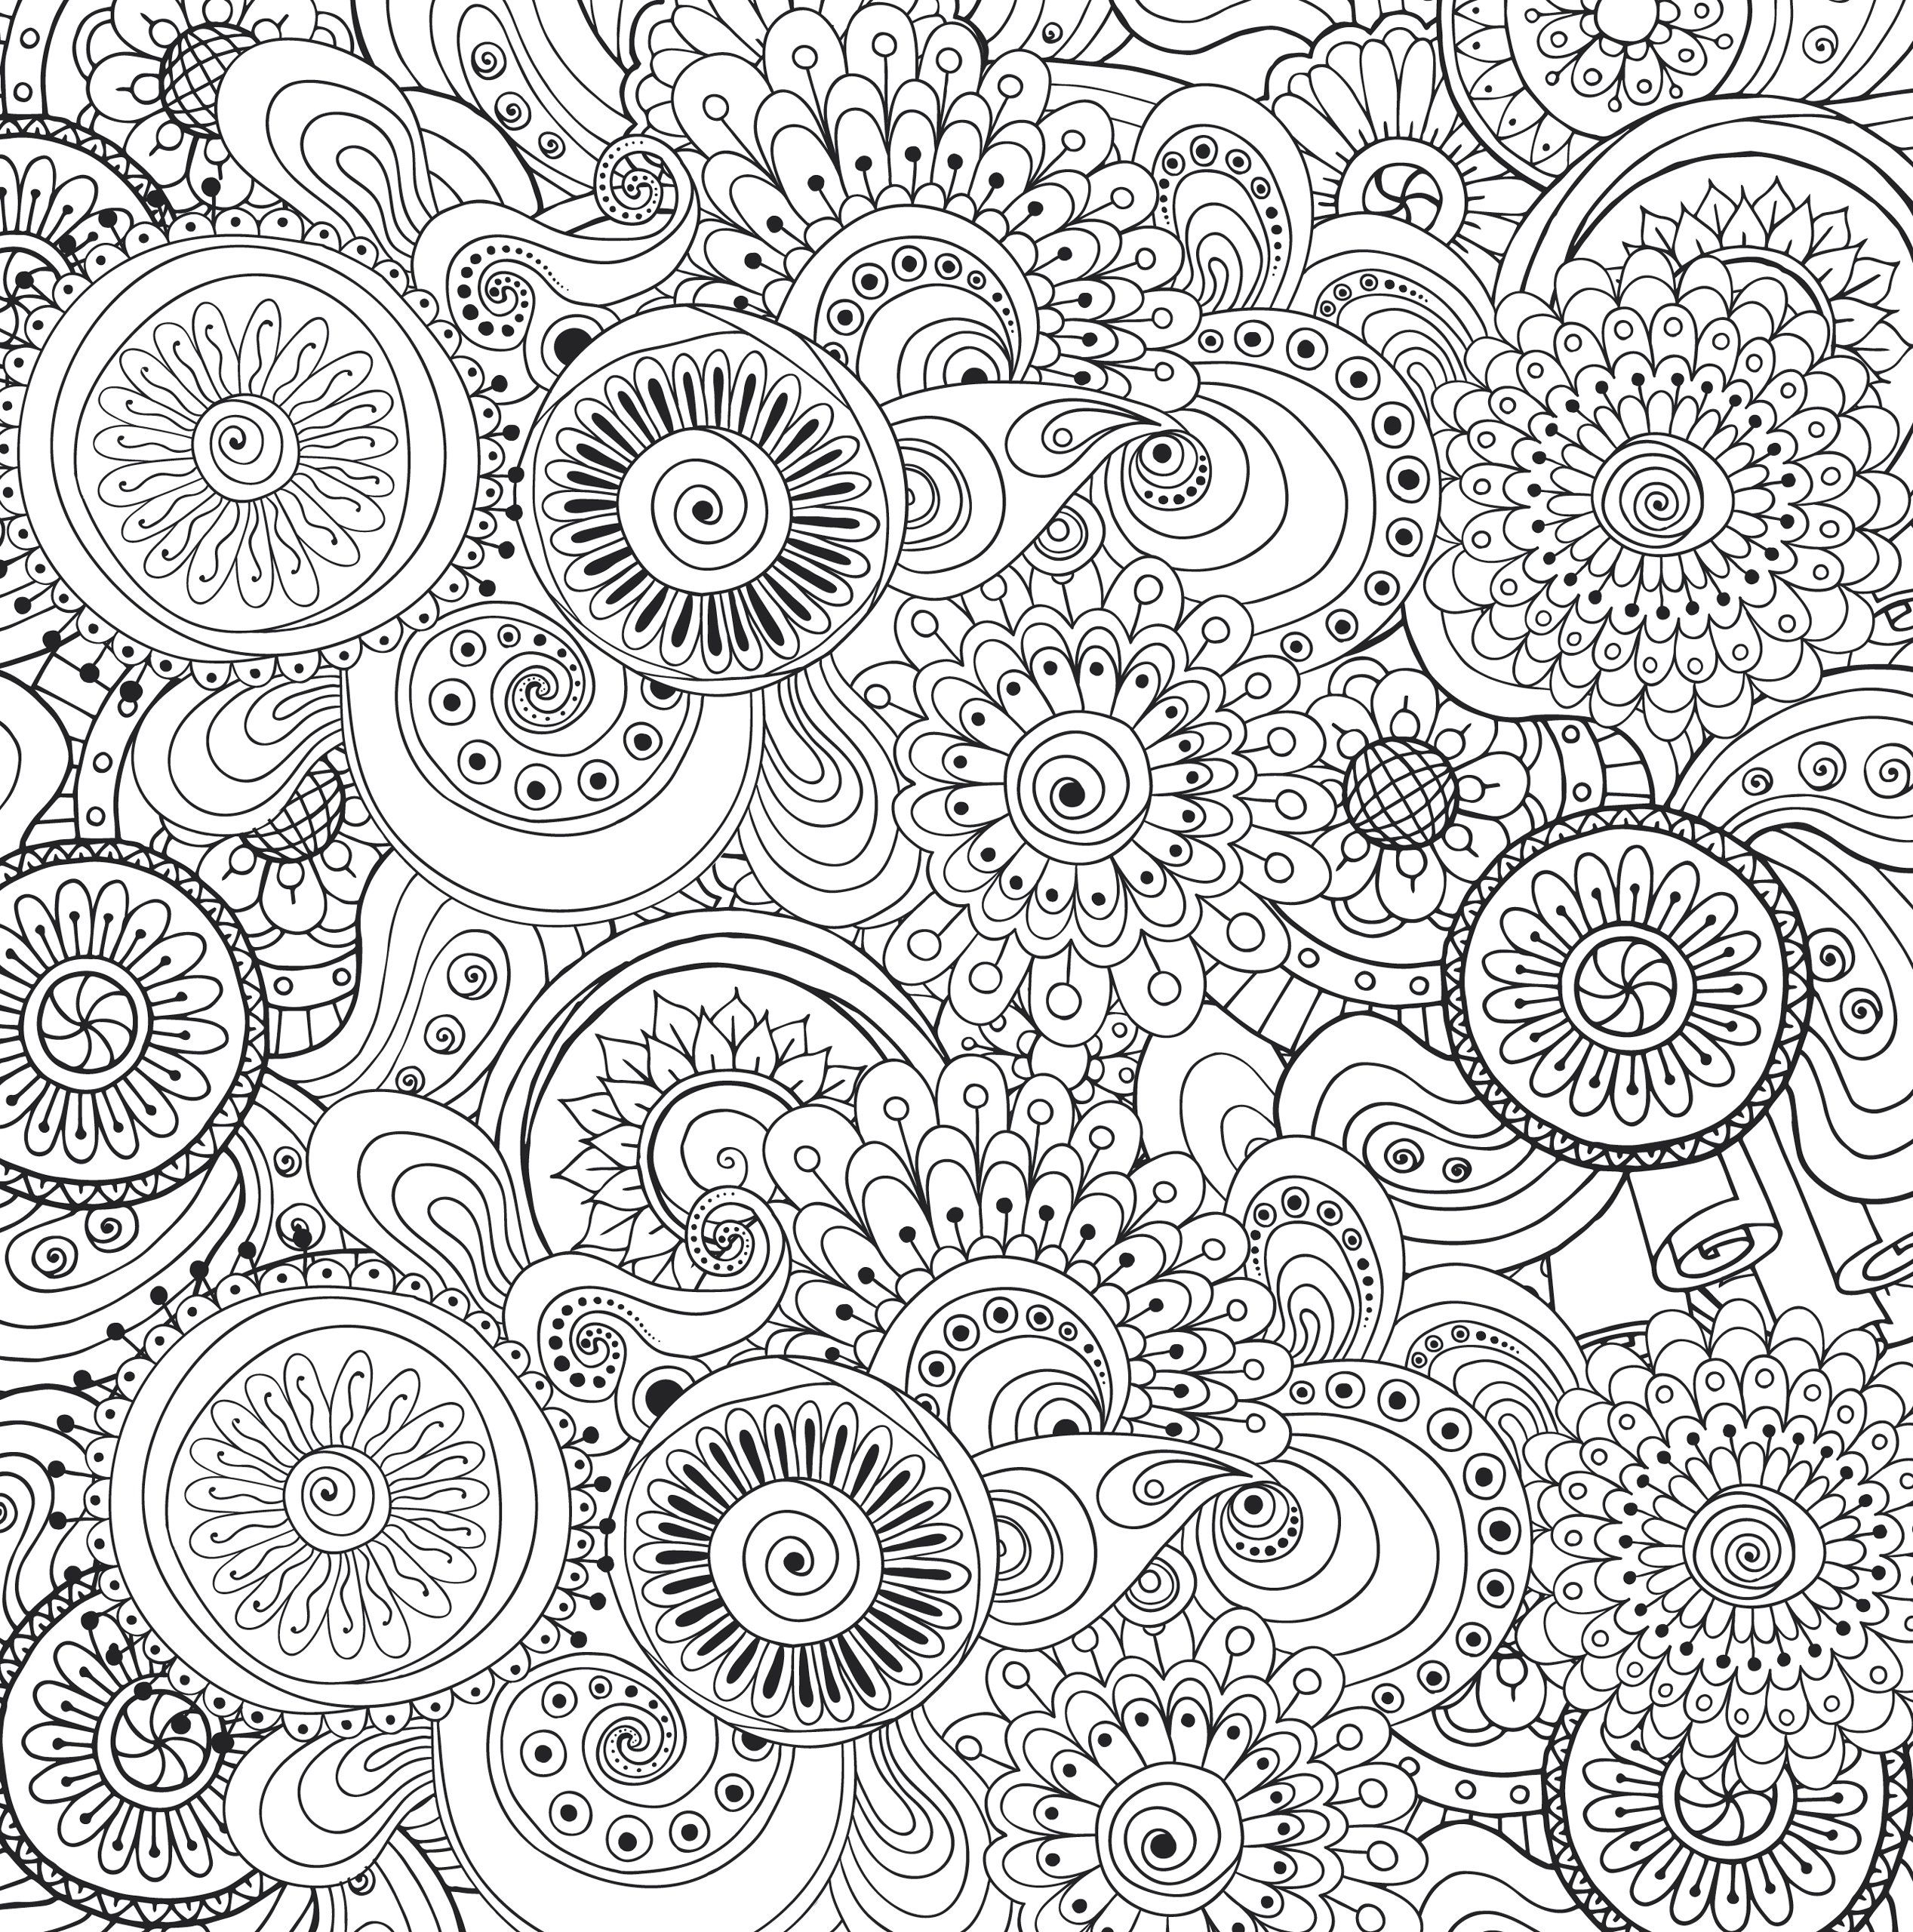 Peaceful Paisleys Adult Coloring Book 31 Stress Relieving